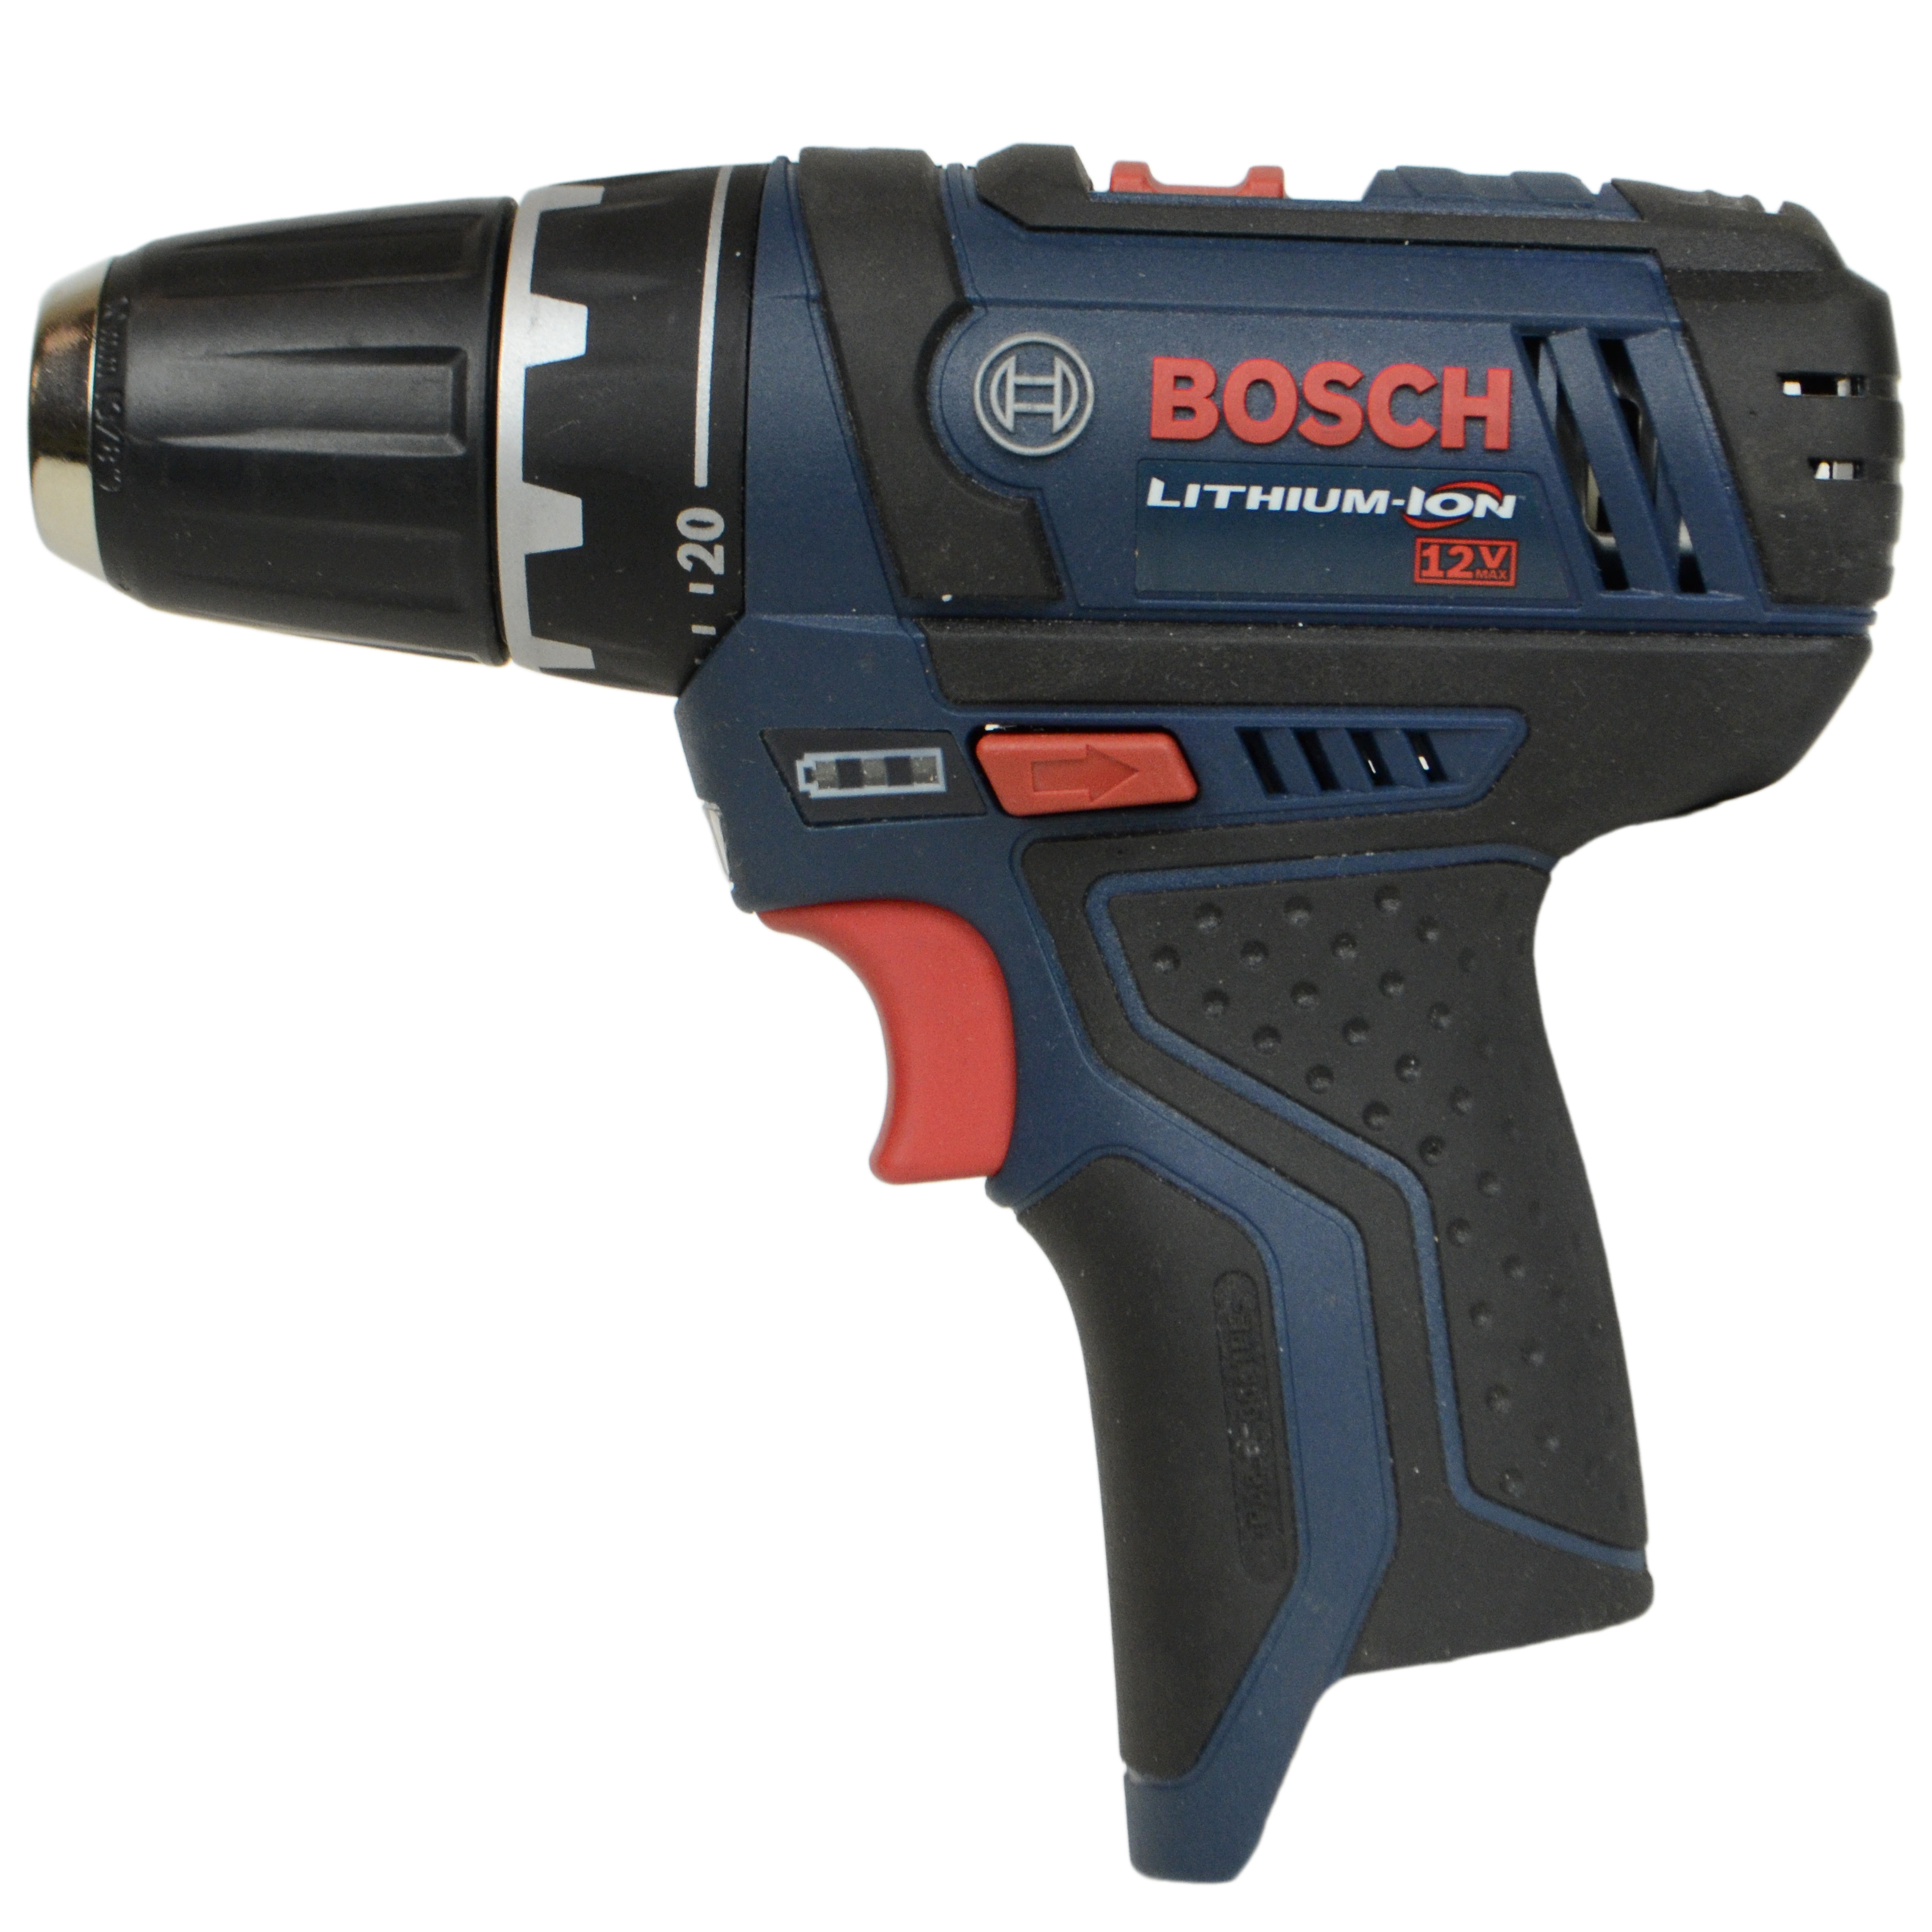 "Bosch Tools PS31 12V 3/8"" Compact Cordless Lithium-Ion Drill/Driver, Tool Only"